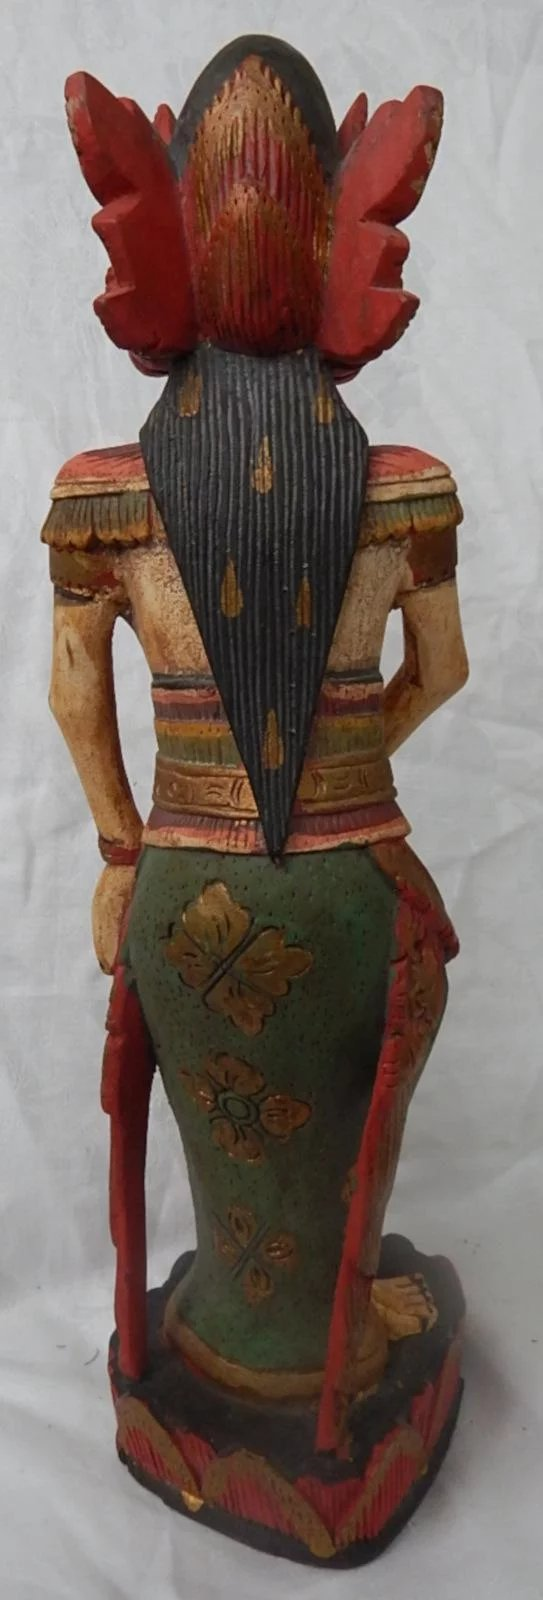 Bali Wood Carving Painted Figure Statue Goddess Indonesian Balinese Ago Ruby Lane